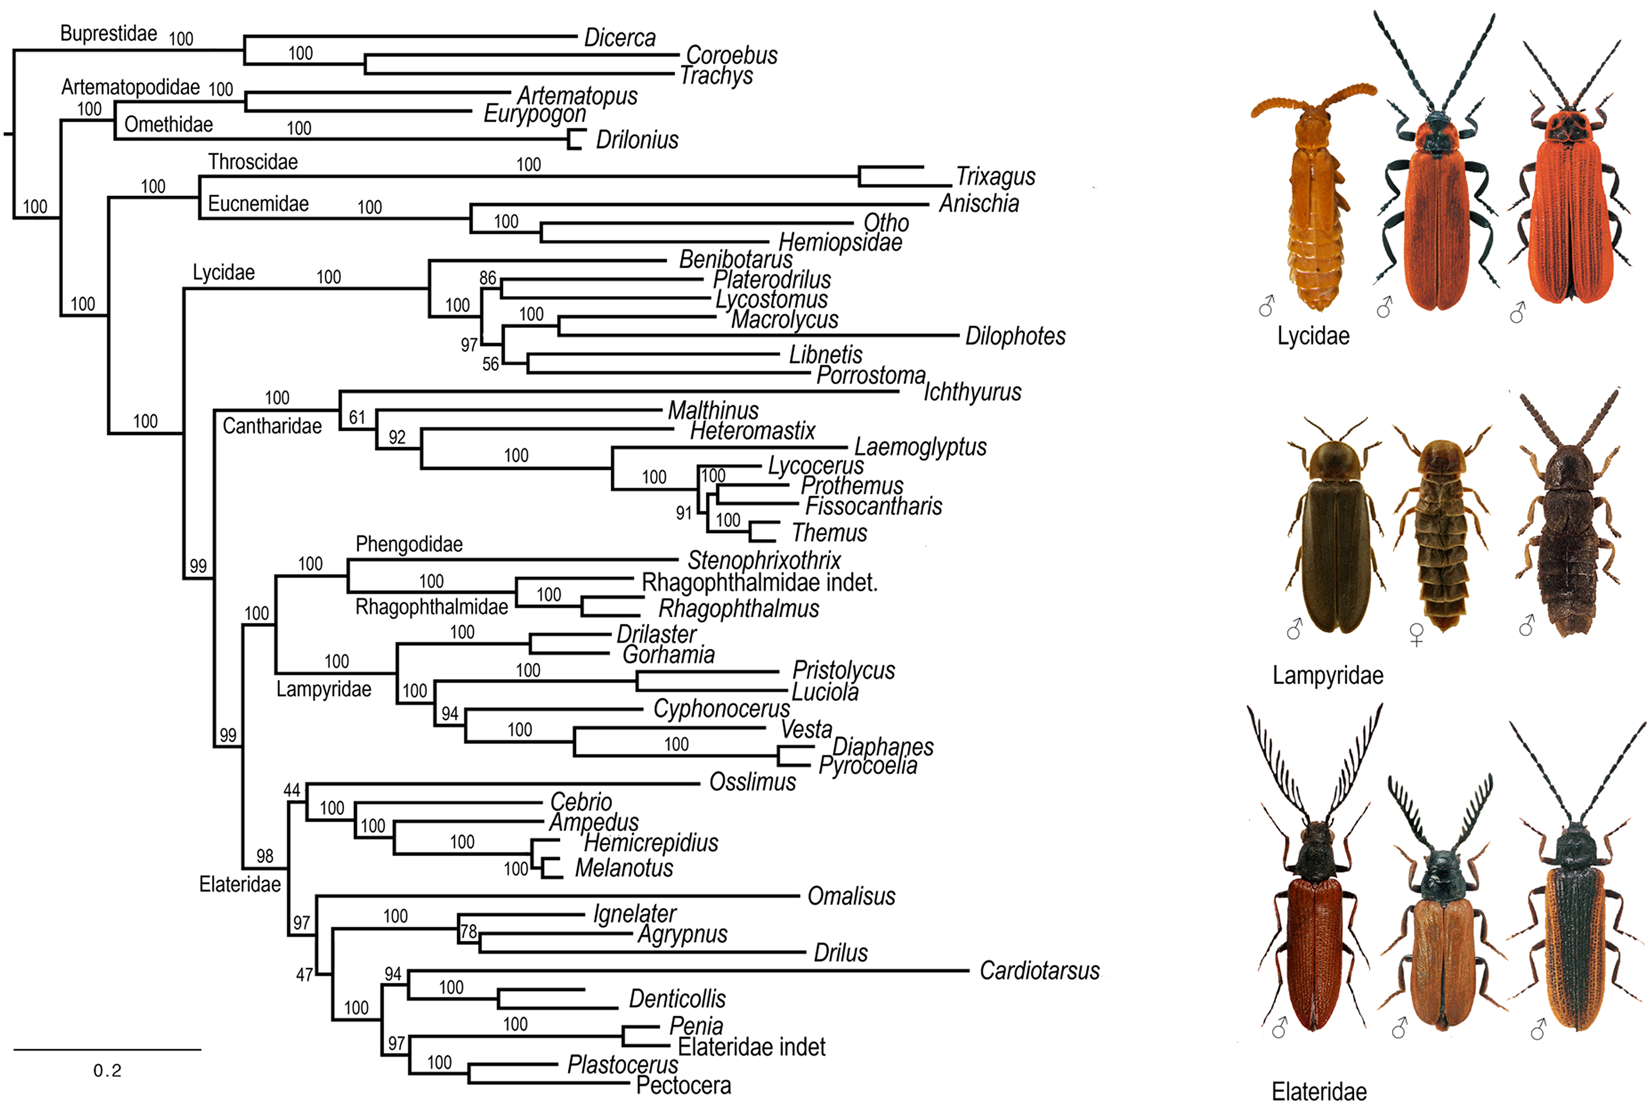 Genome sequences identify three families of Coleoptera as